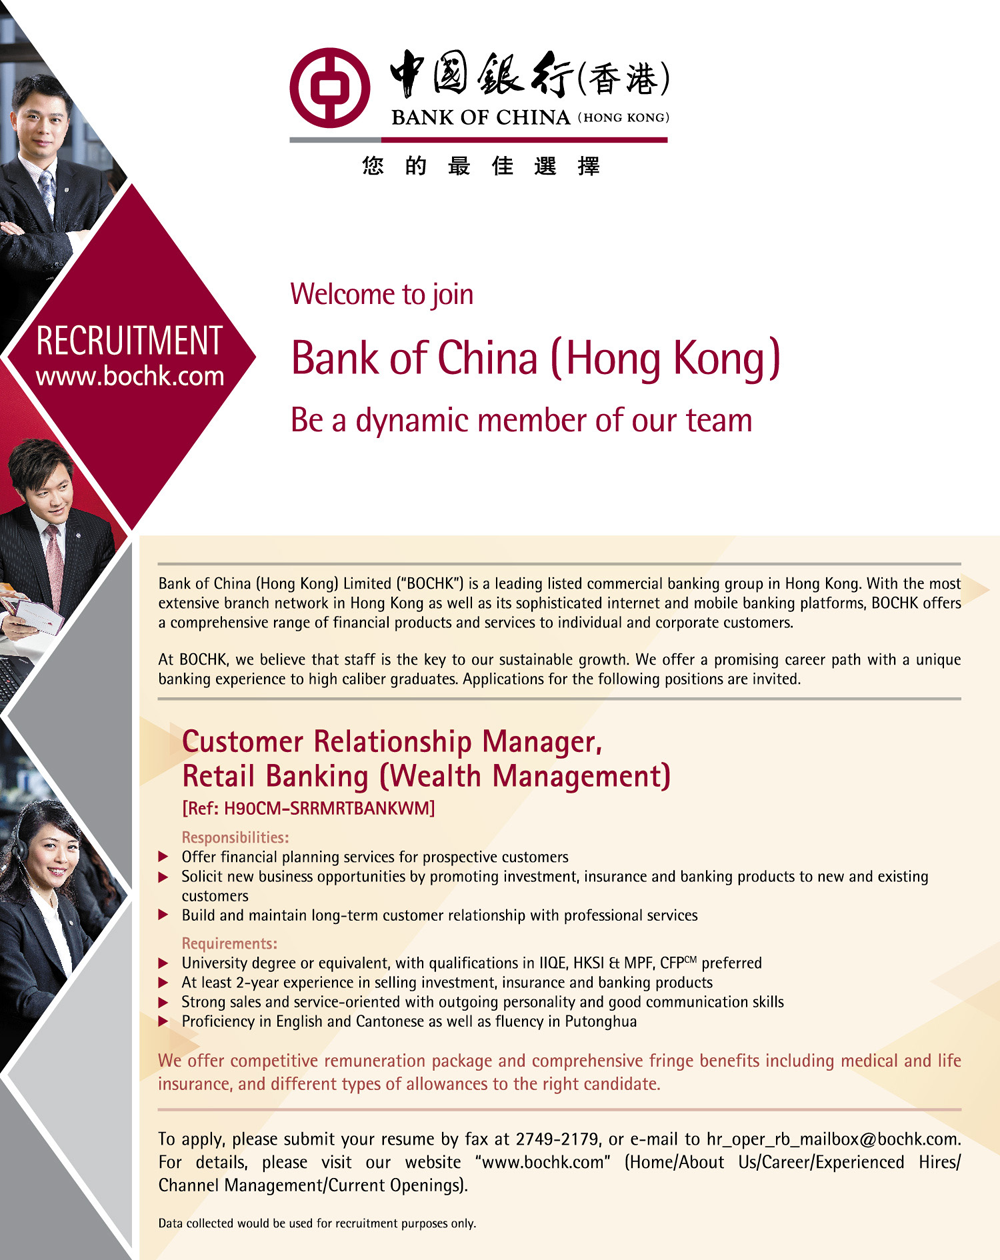 Customer Relationship Manager, Retail Banking (Wealth Management) by Bank of China